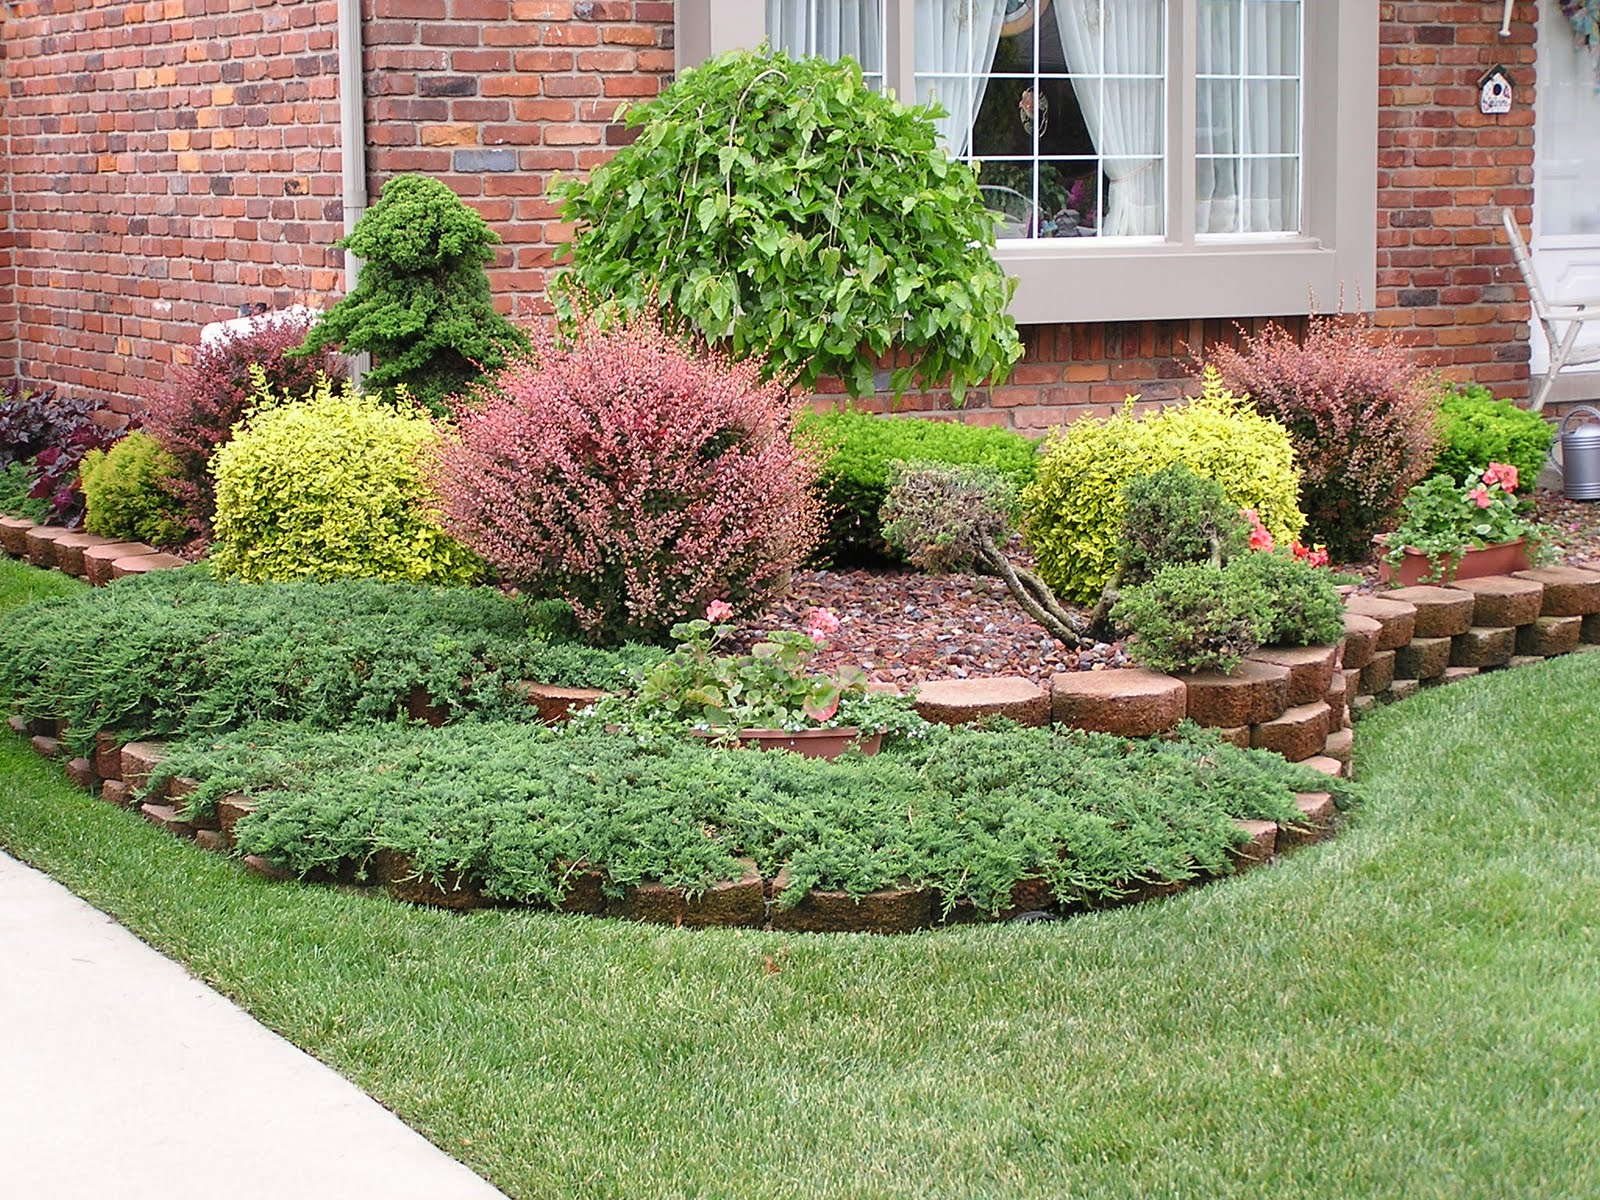 D i y d e s i g n curb appeal part 2 the landscaping for Your garden design